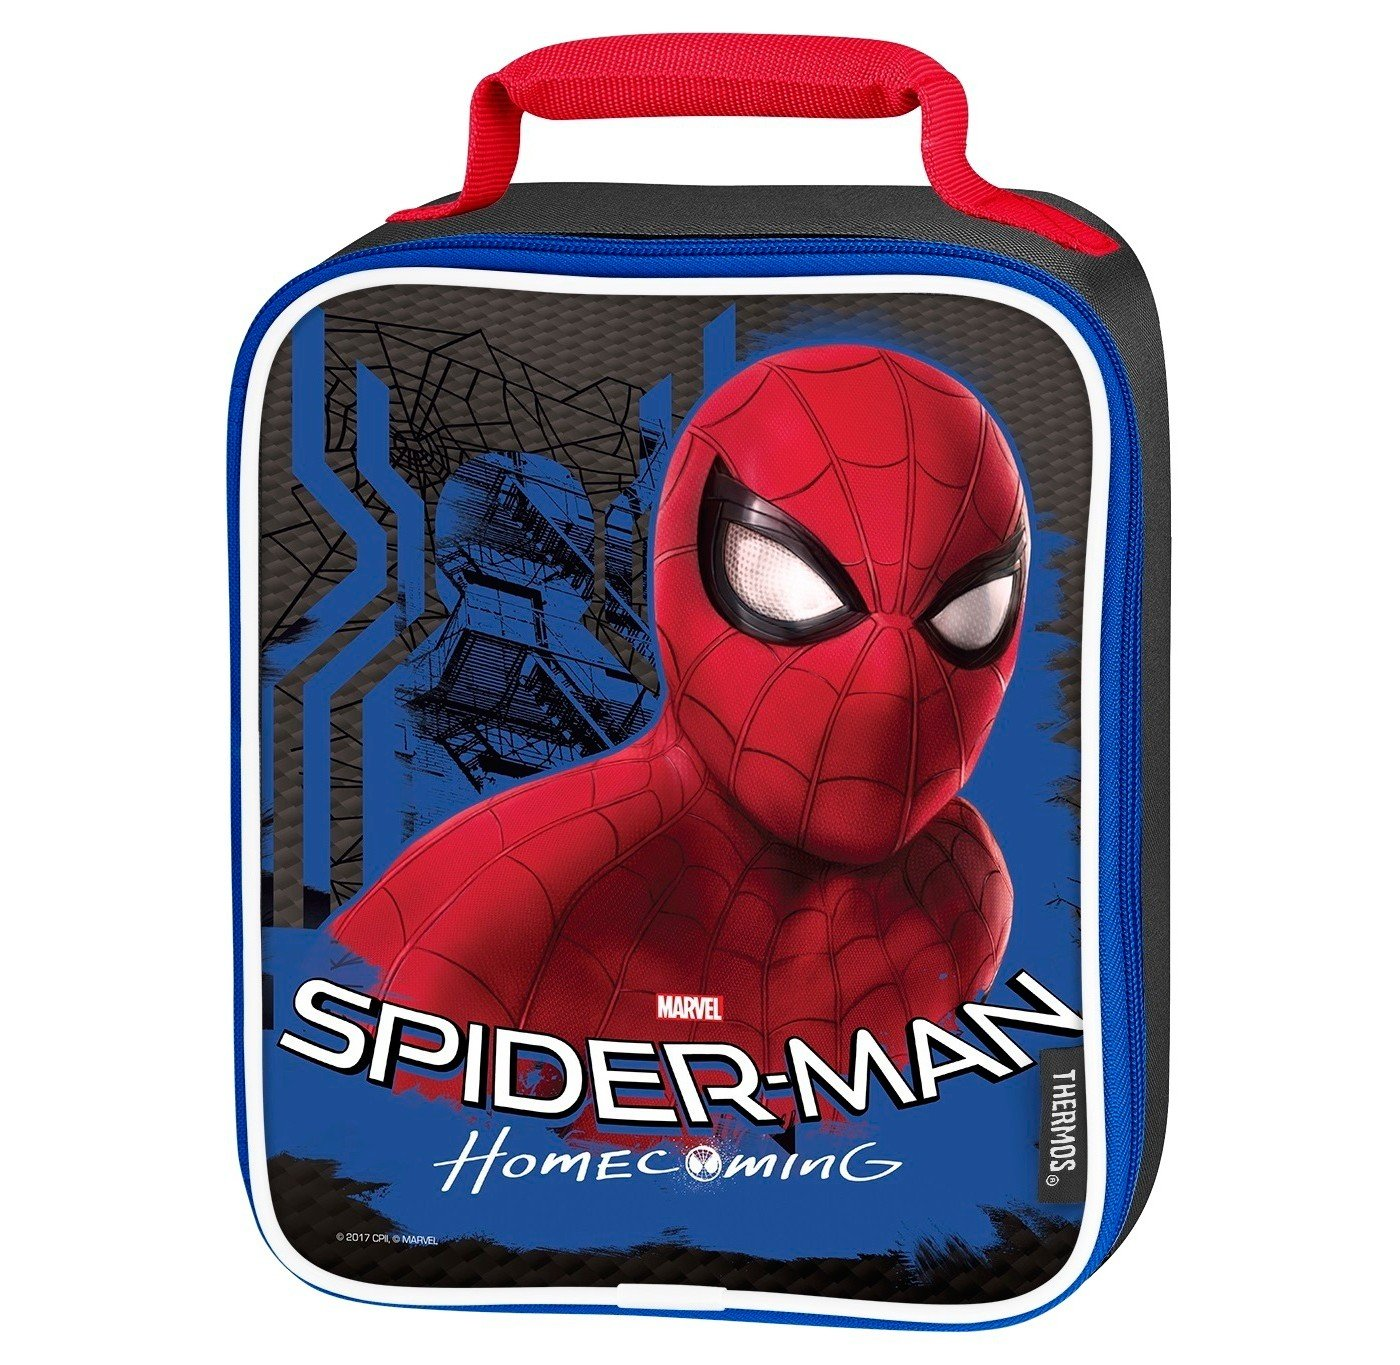 THERMOS Soft Upright Lunch Box Spider-Man: Homecoming